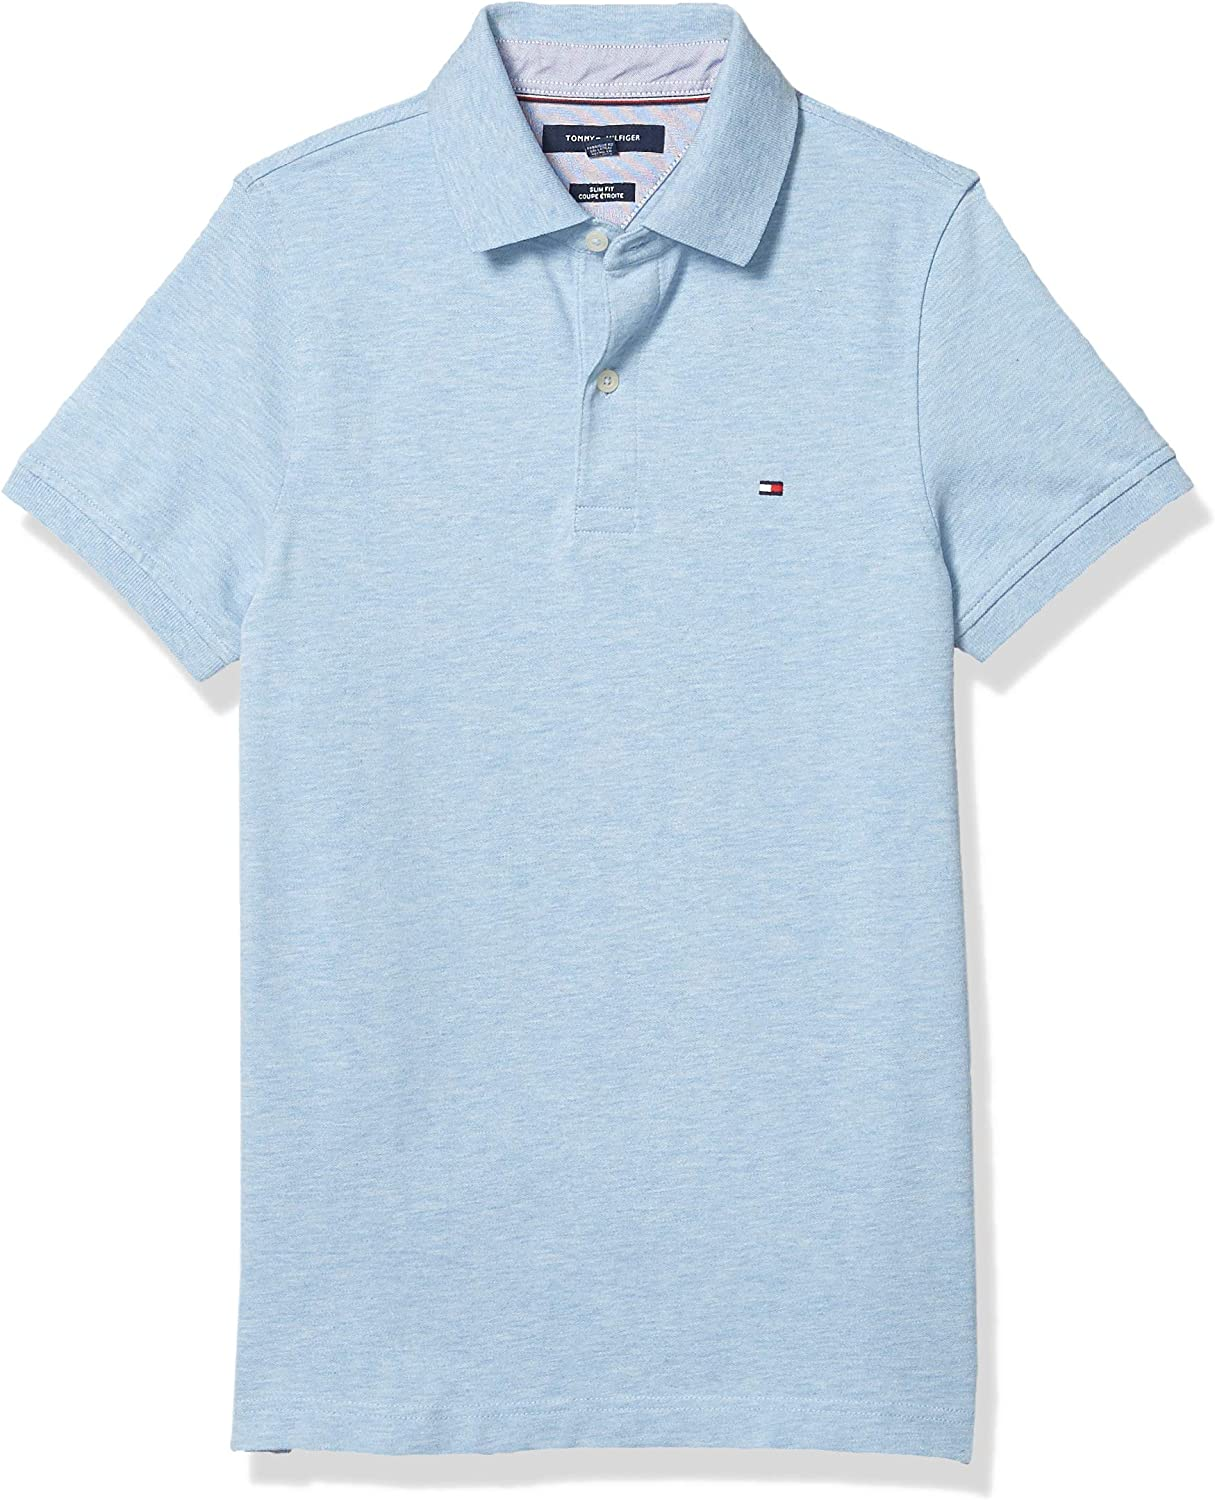 Tommy Hilfiger Men's Short Sleeve Stretch Polo Shirt in Slim Fit